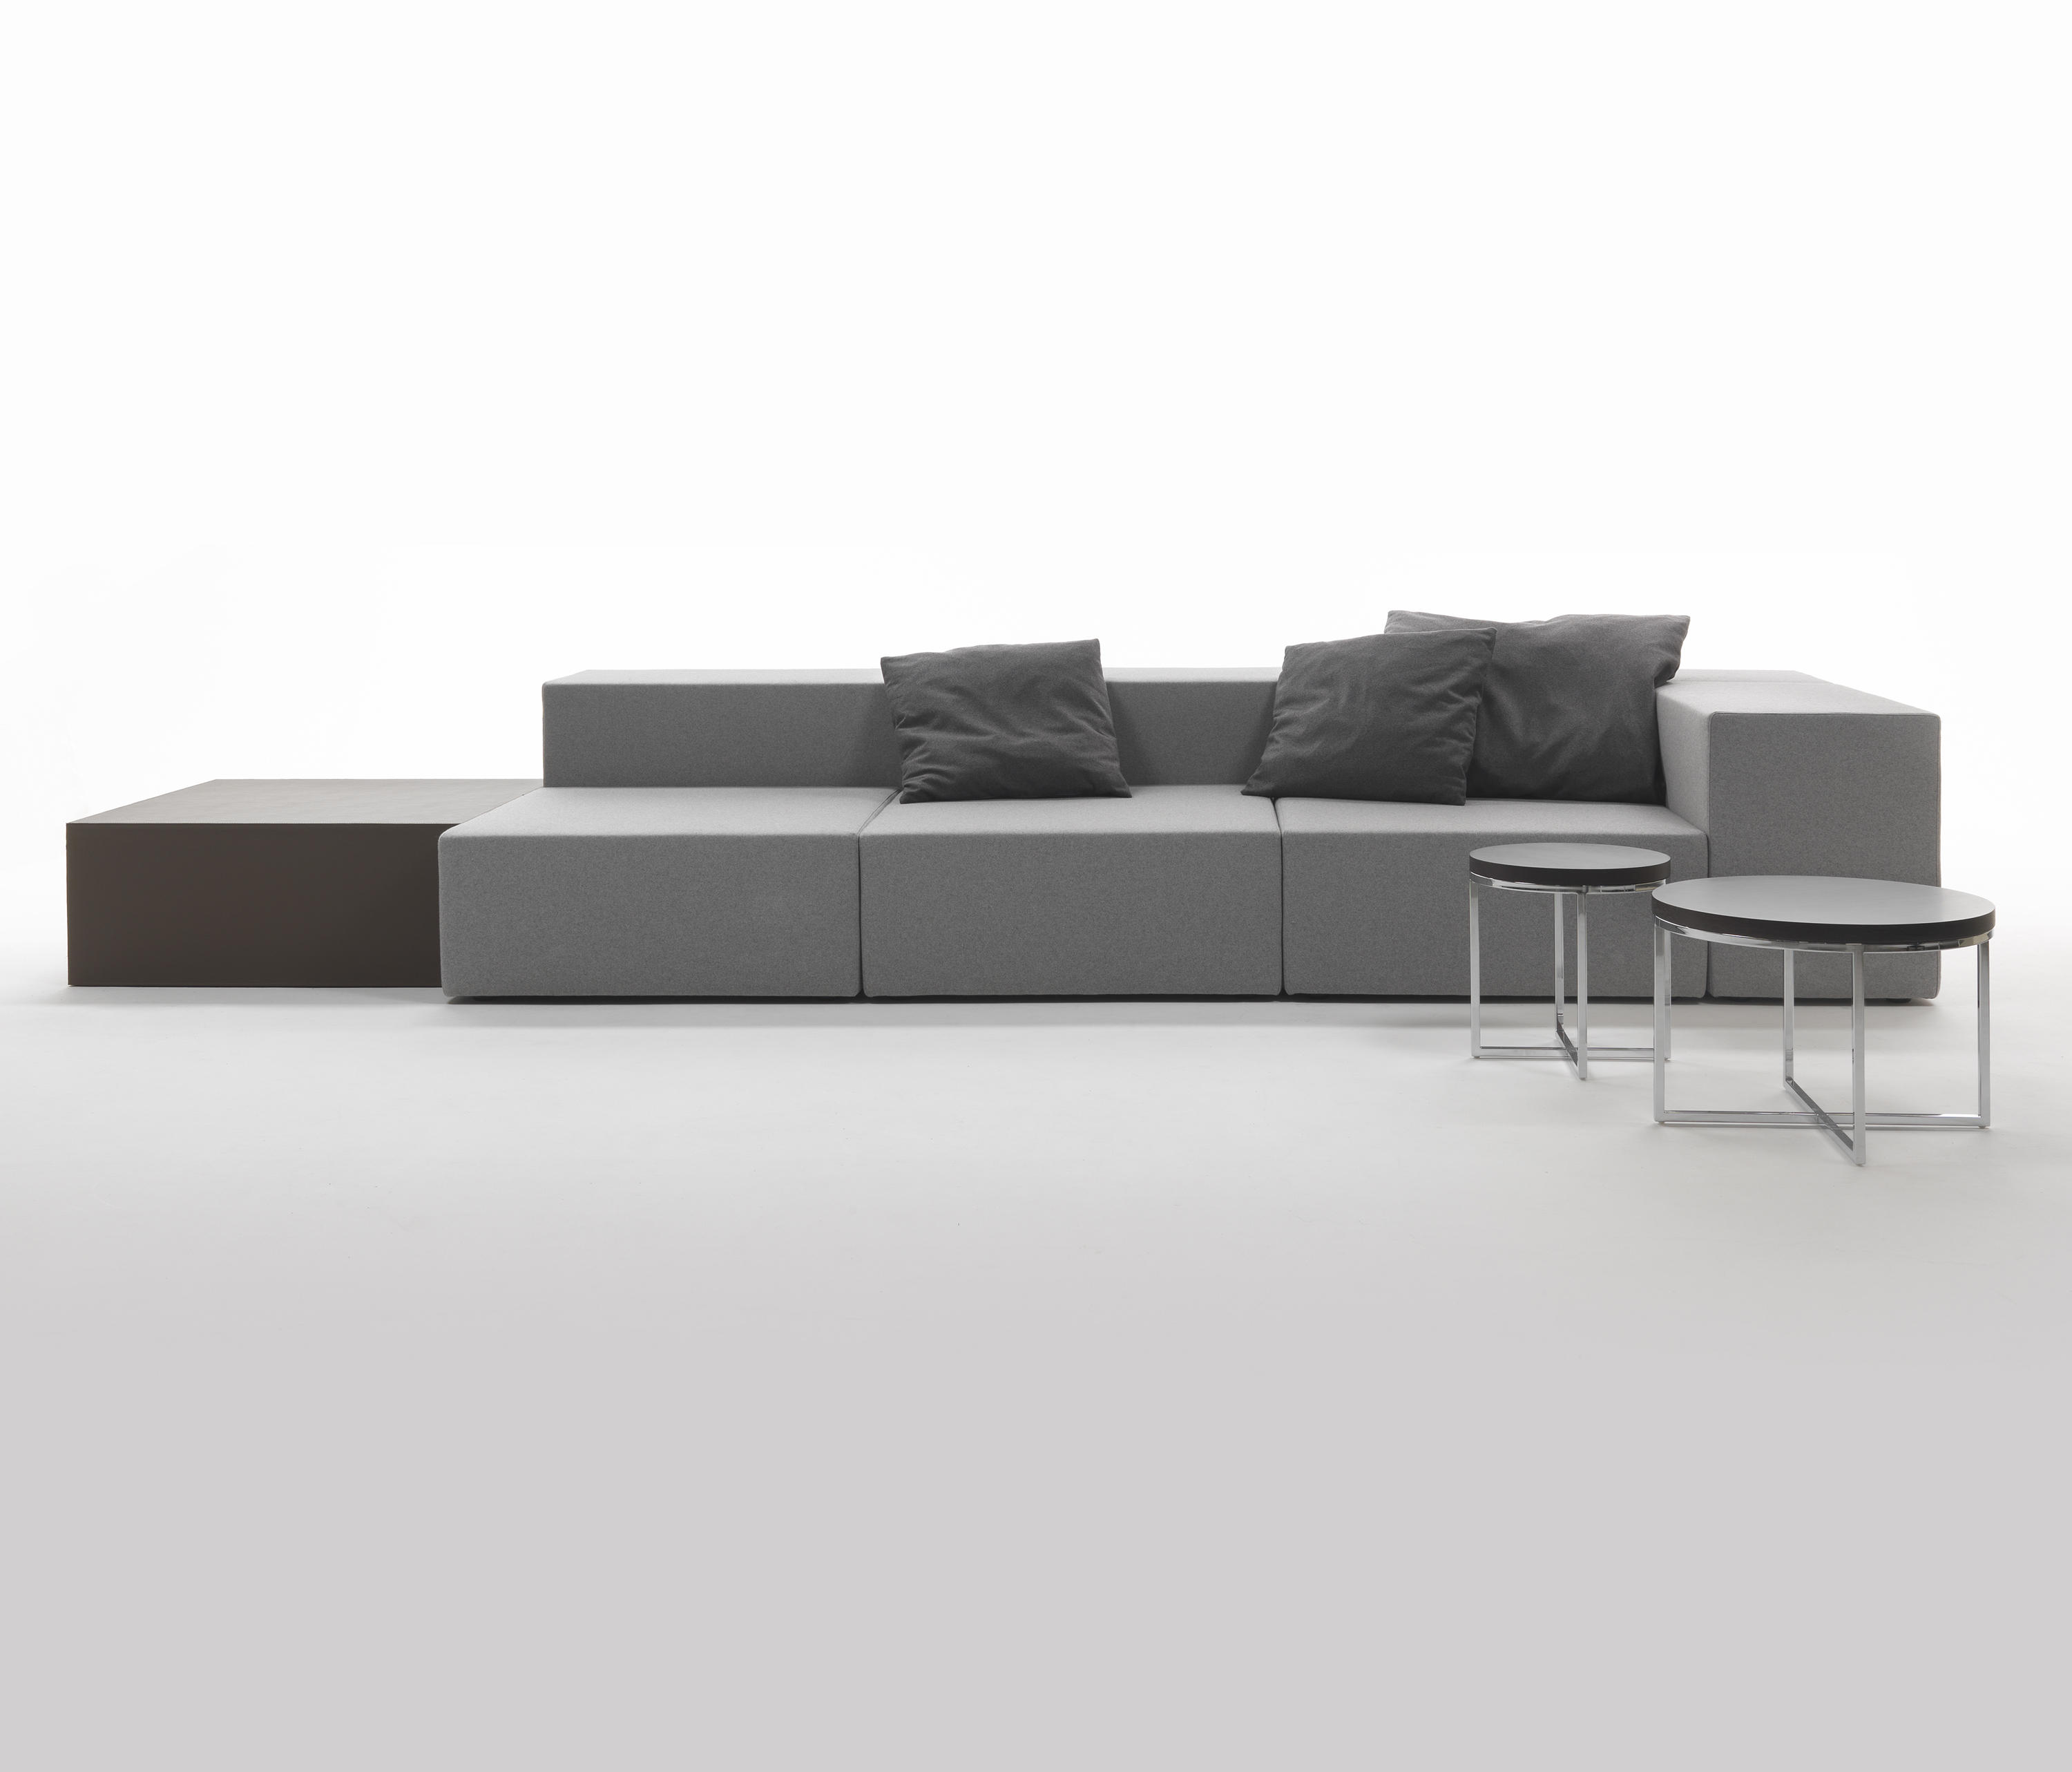 Lounge sofa  LOUNGE SOFA - Modular seating systems from Giulio Marelli | Architonic